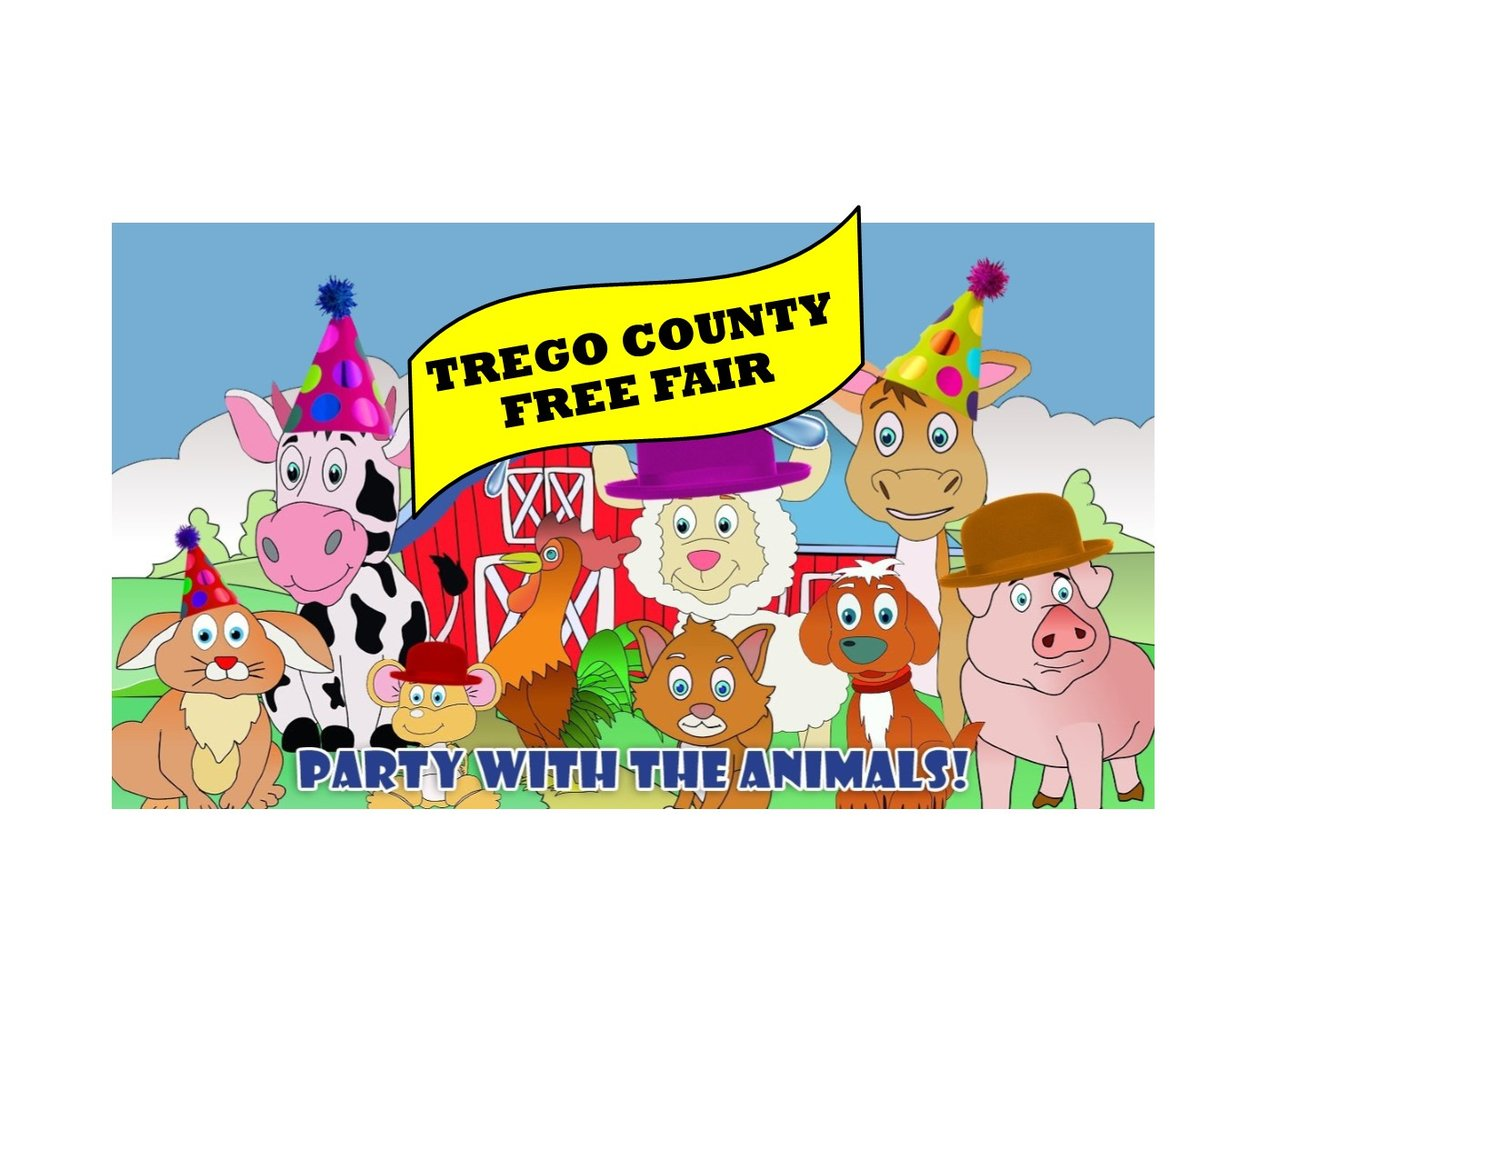 Trego County Fair